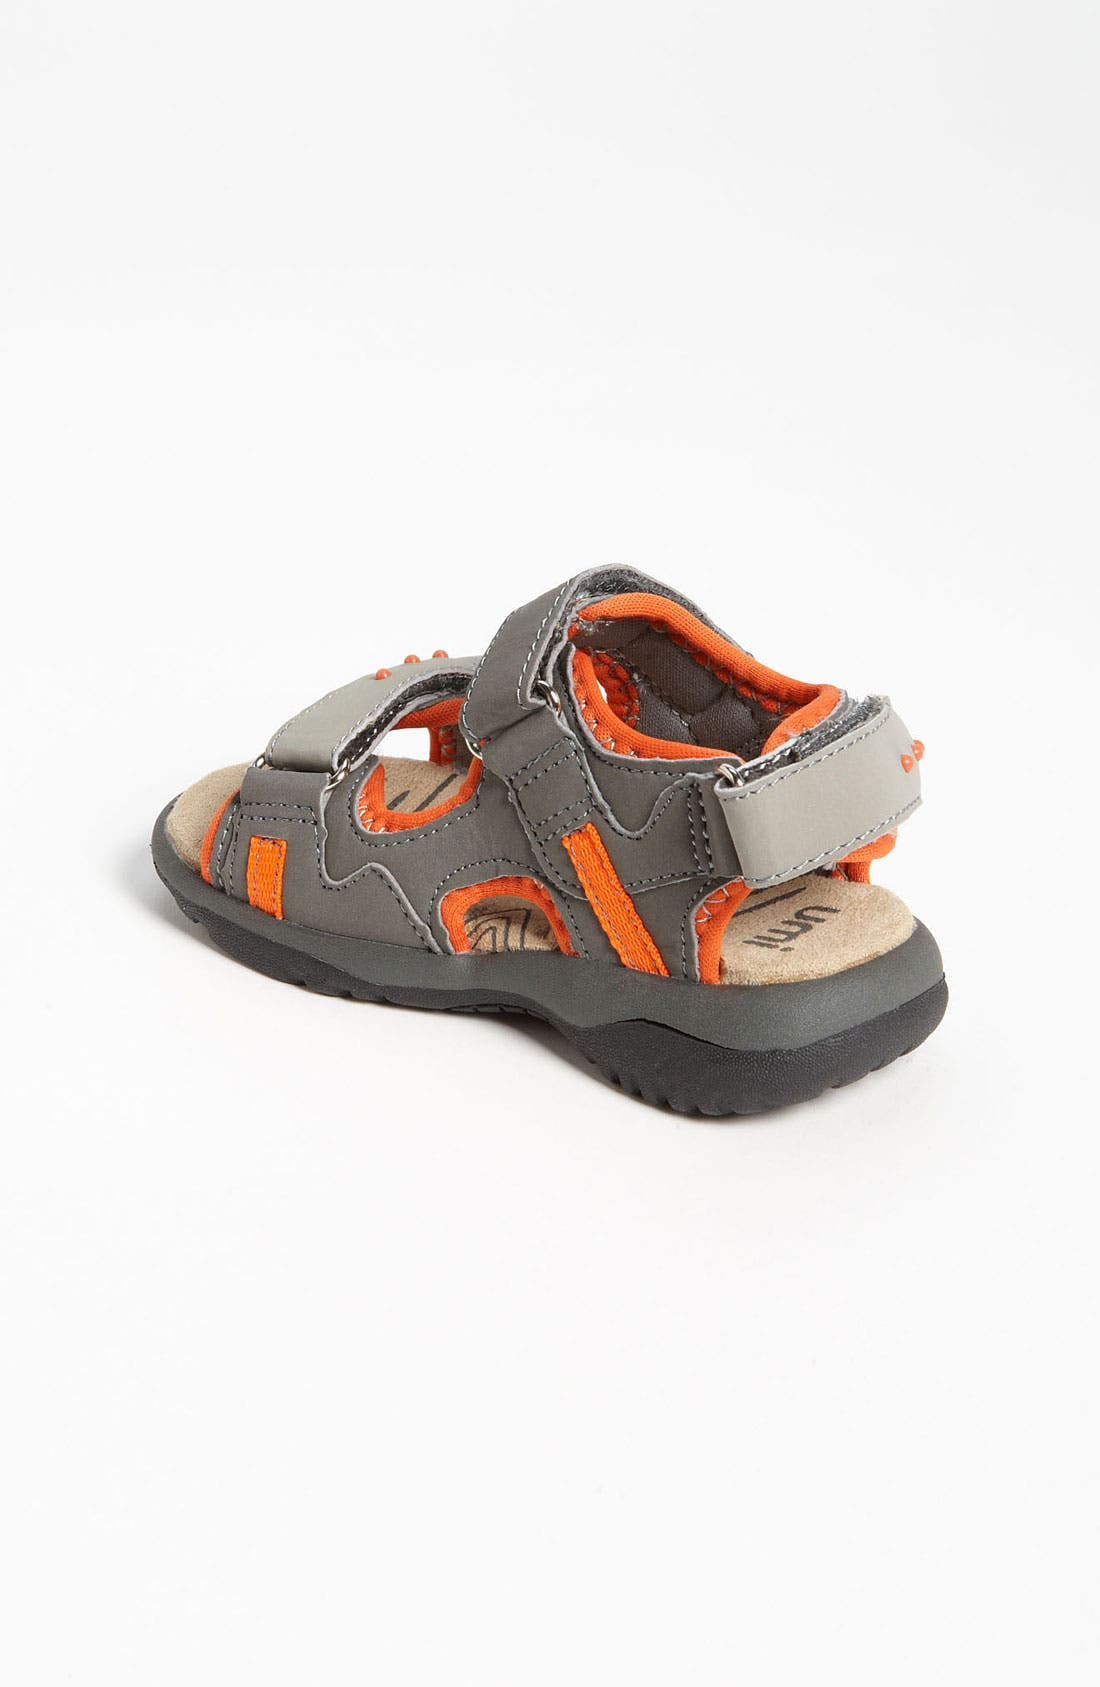 Alternate Image 2  - Umi 'Laren' Sandal (Walker, Toddler, Little Kid & Big Kid)